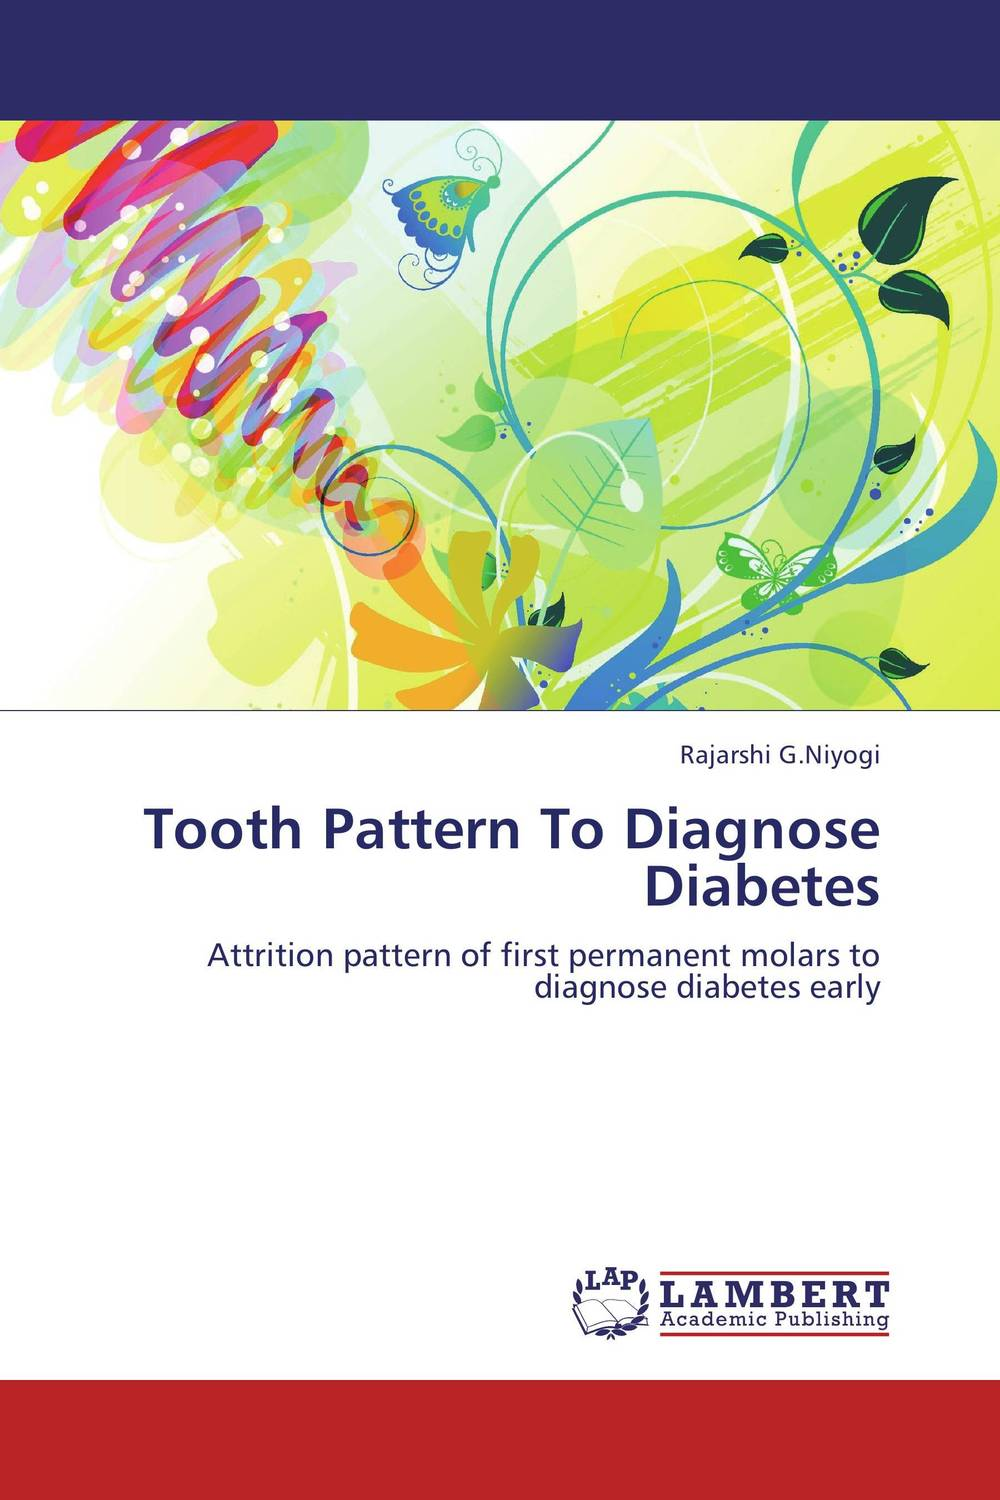 Tooth Pattern To Diagnose Diabetes